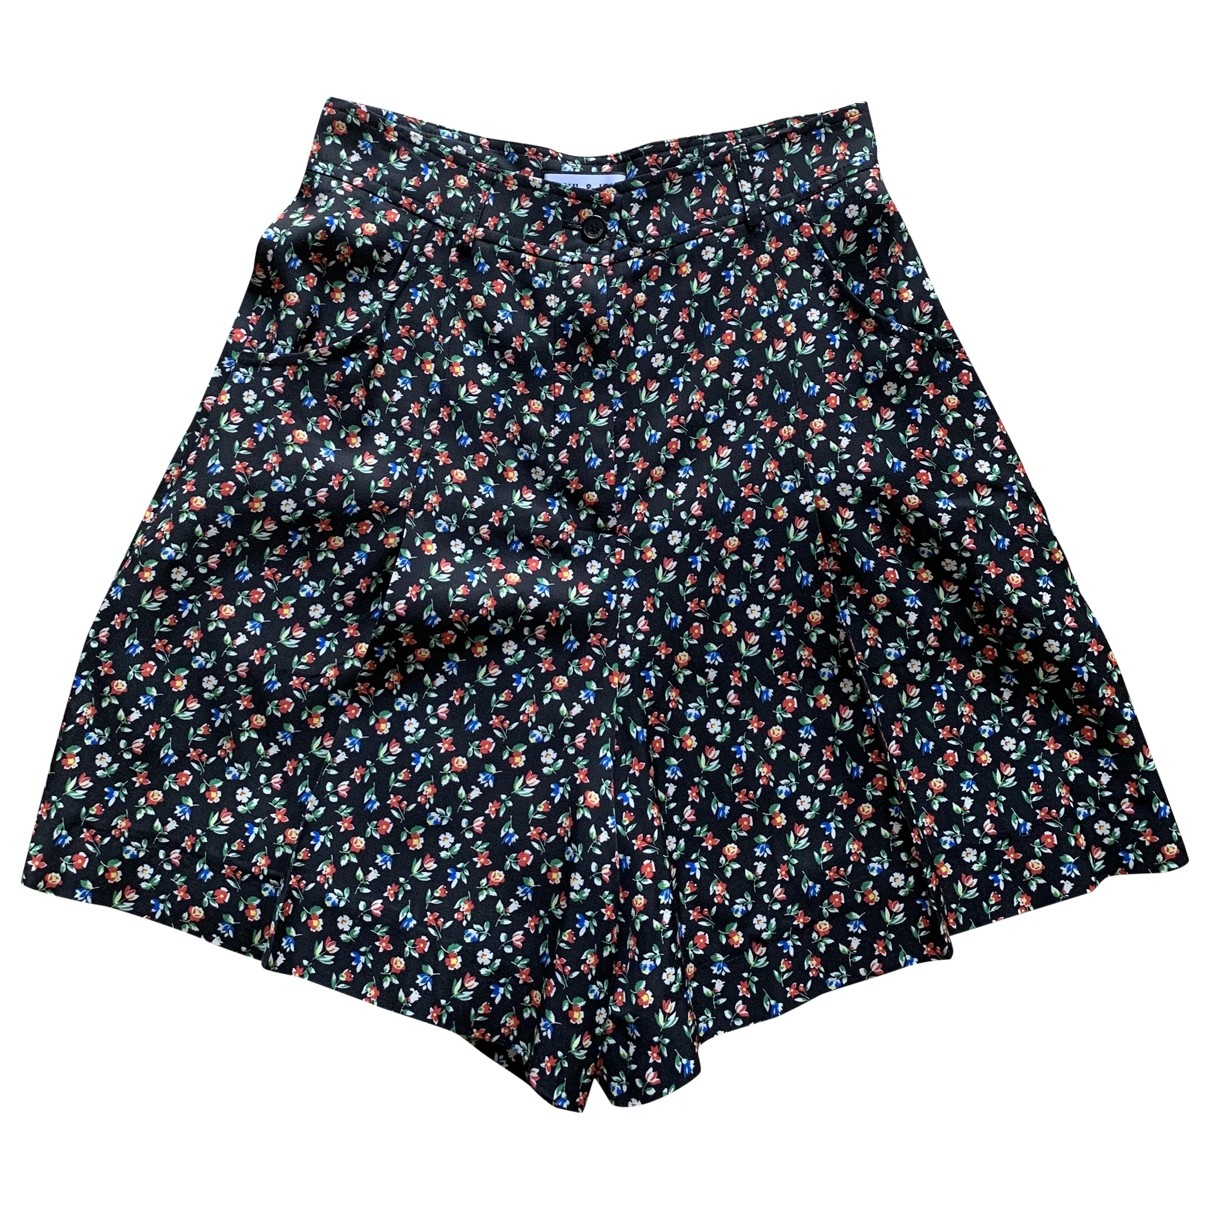 Paul & Joe \N Black Shorts for Women S International